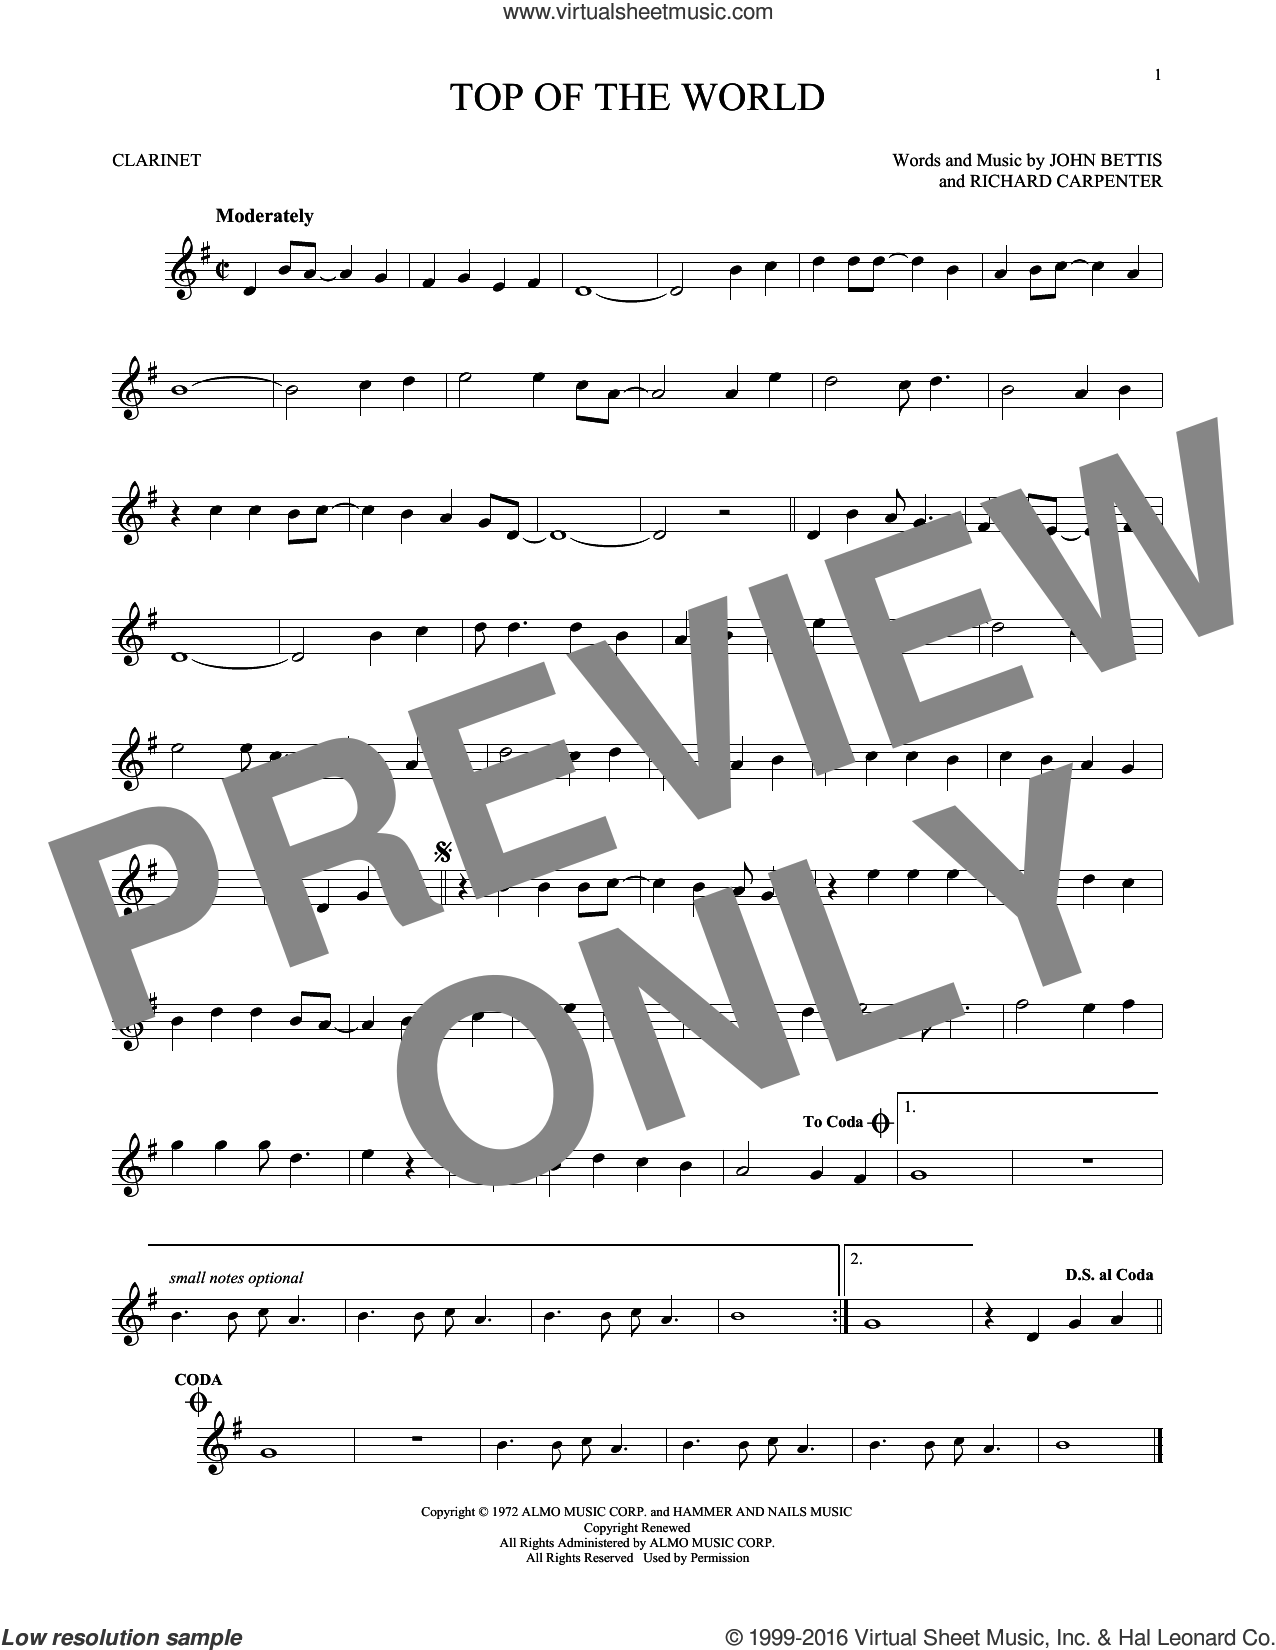 Top Of The World sheet music for clarinet solo by John Bettis, Carpenters and Richard Carpenter, intermediate skill level